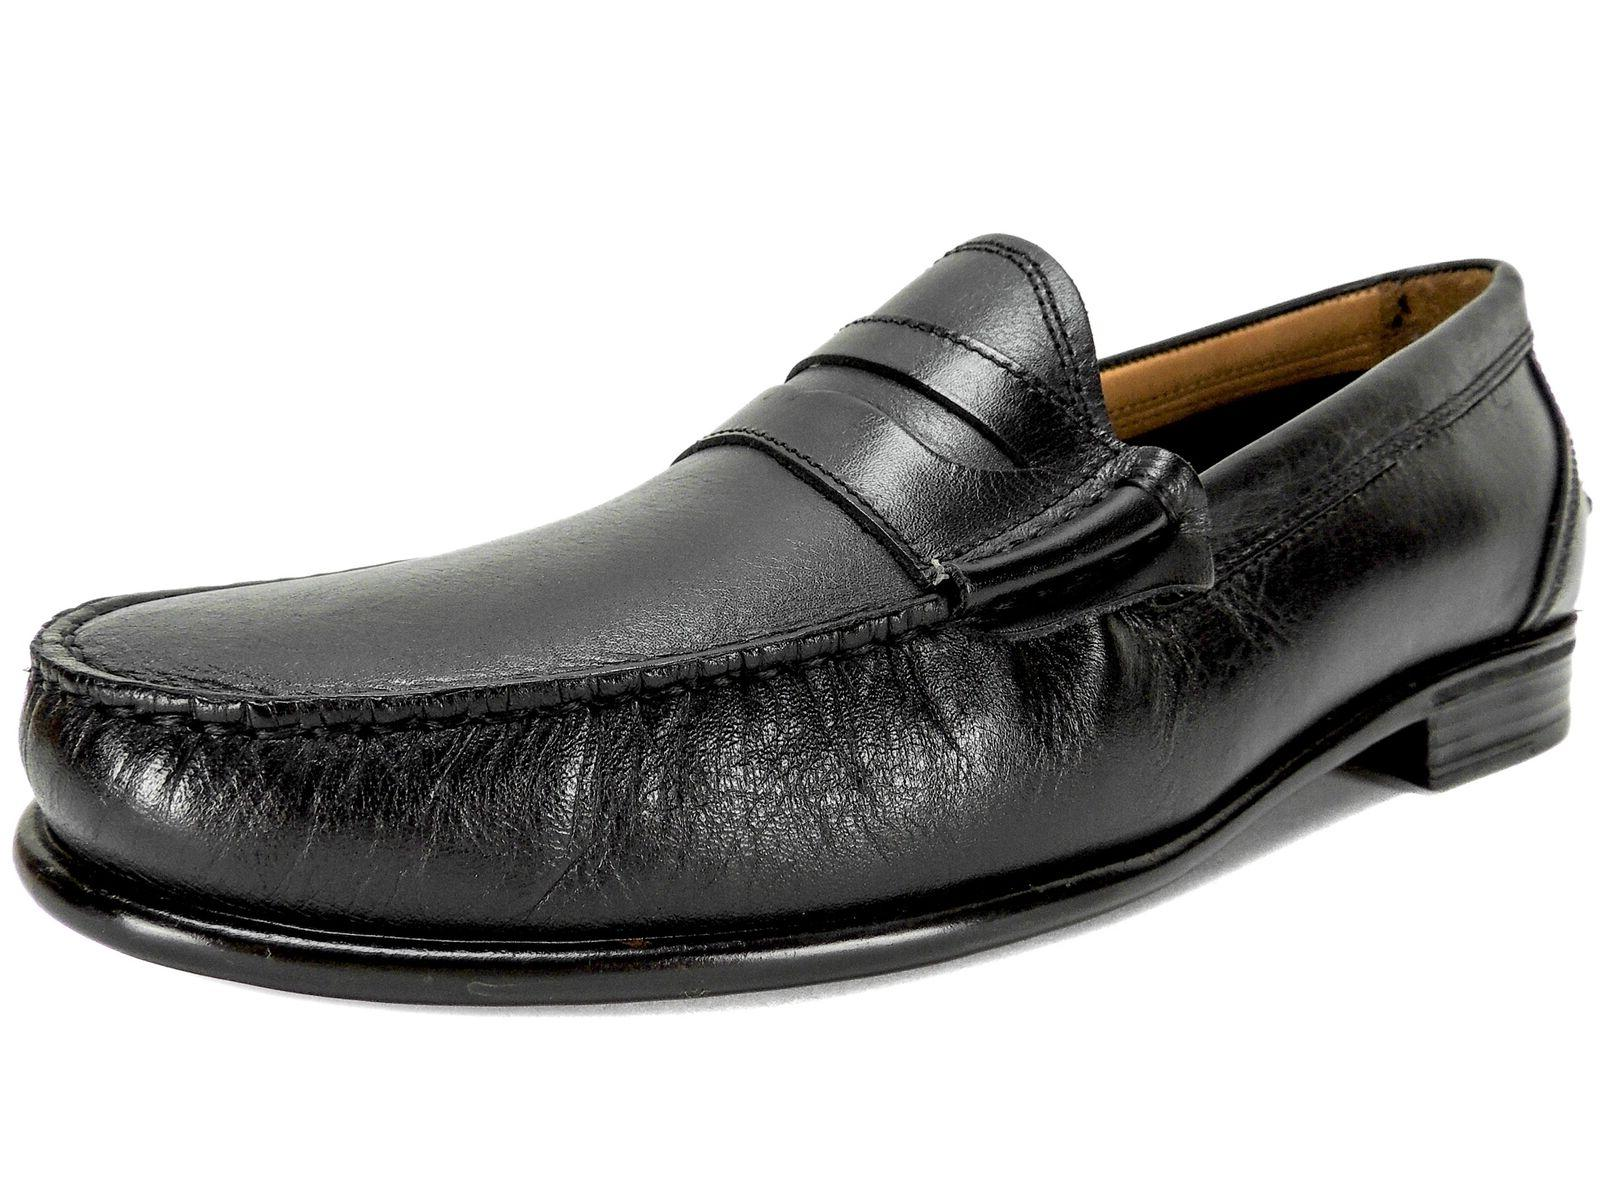 g h bass and co men s